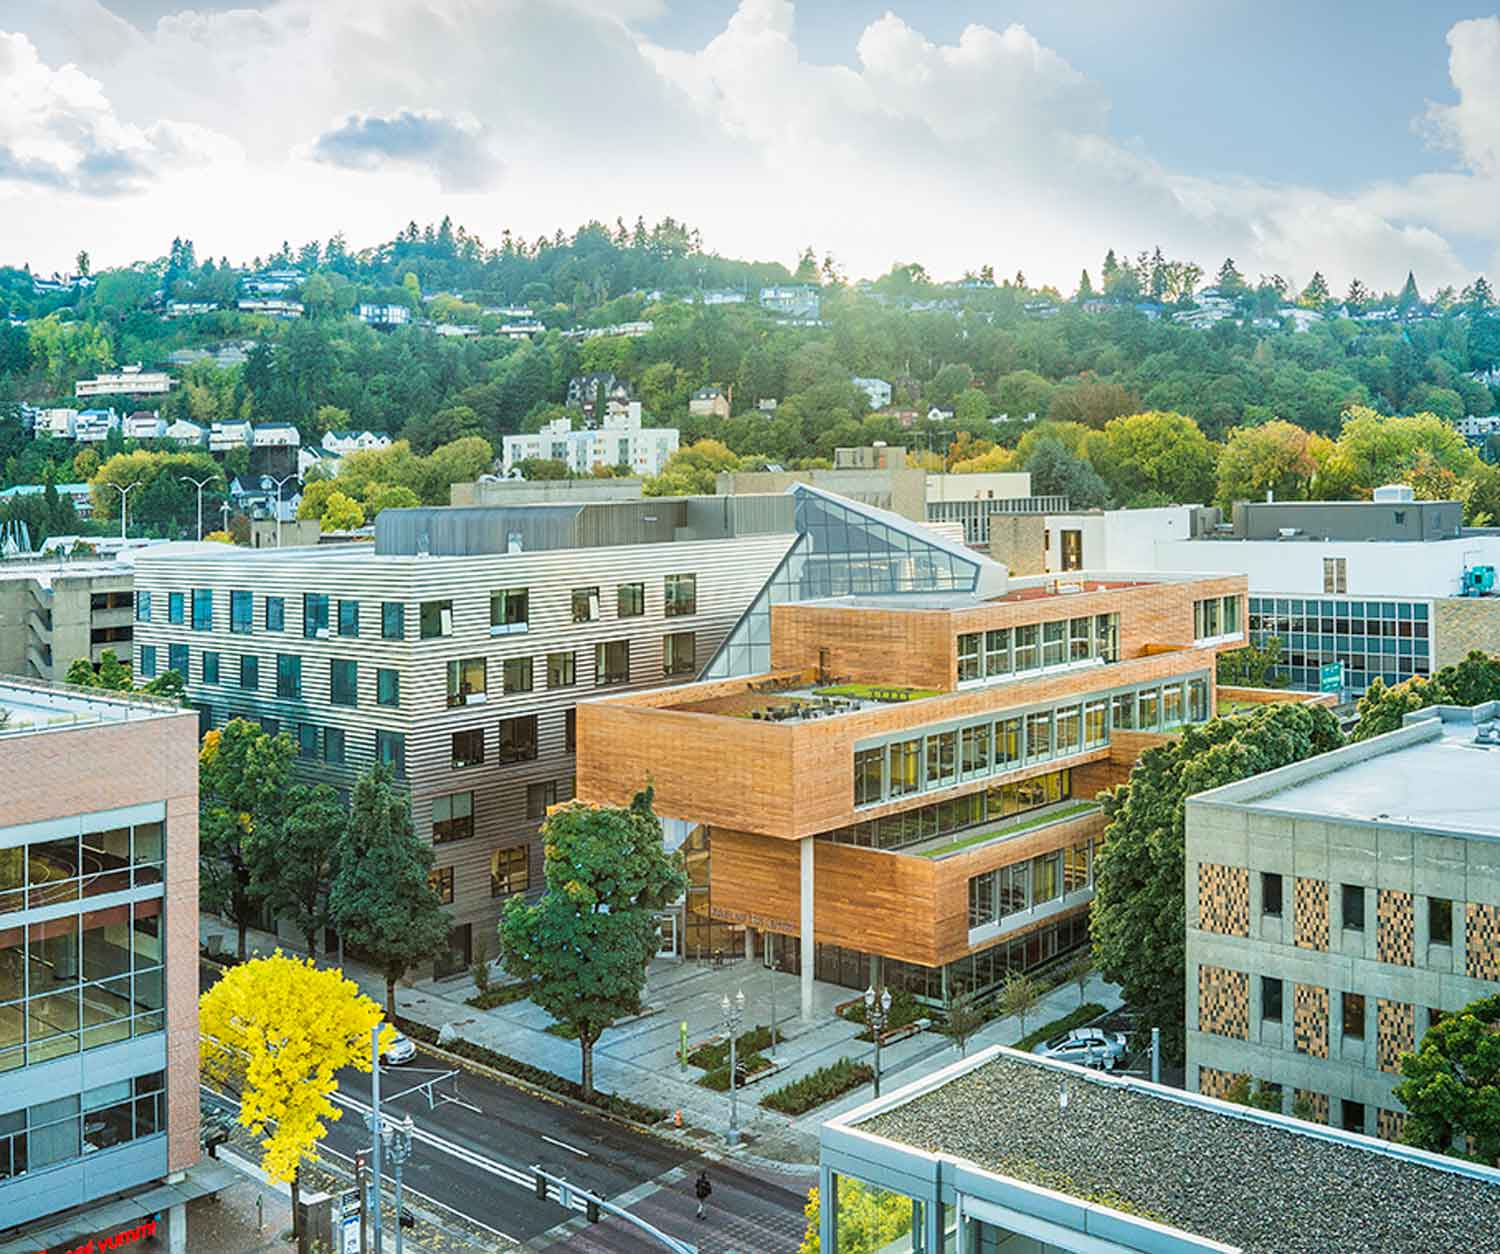 Sited at the midpoint between the Portland West Hills and the Willamette River. The Montgomery Green Street, in front of the Karl Miller Center will connect many key urban spaces within the city. Janis Rozkalns